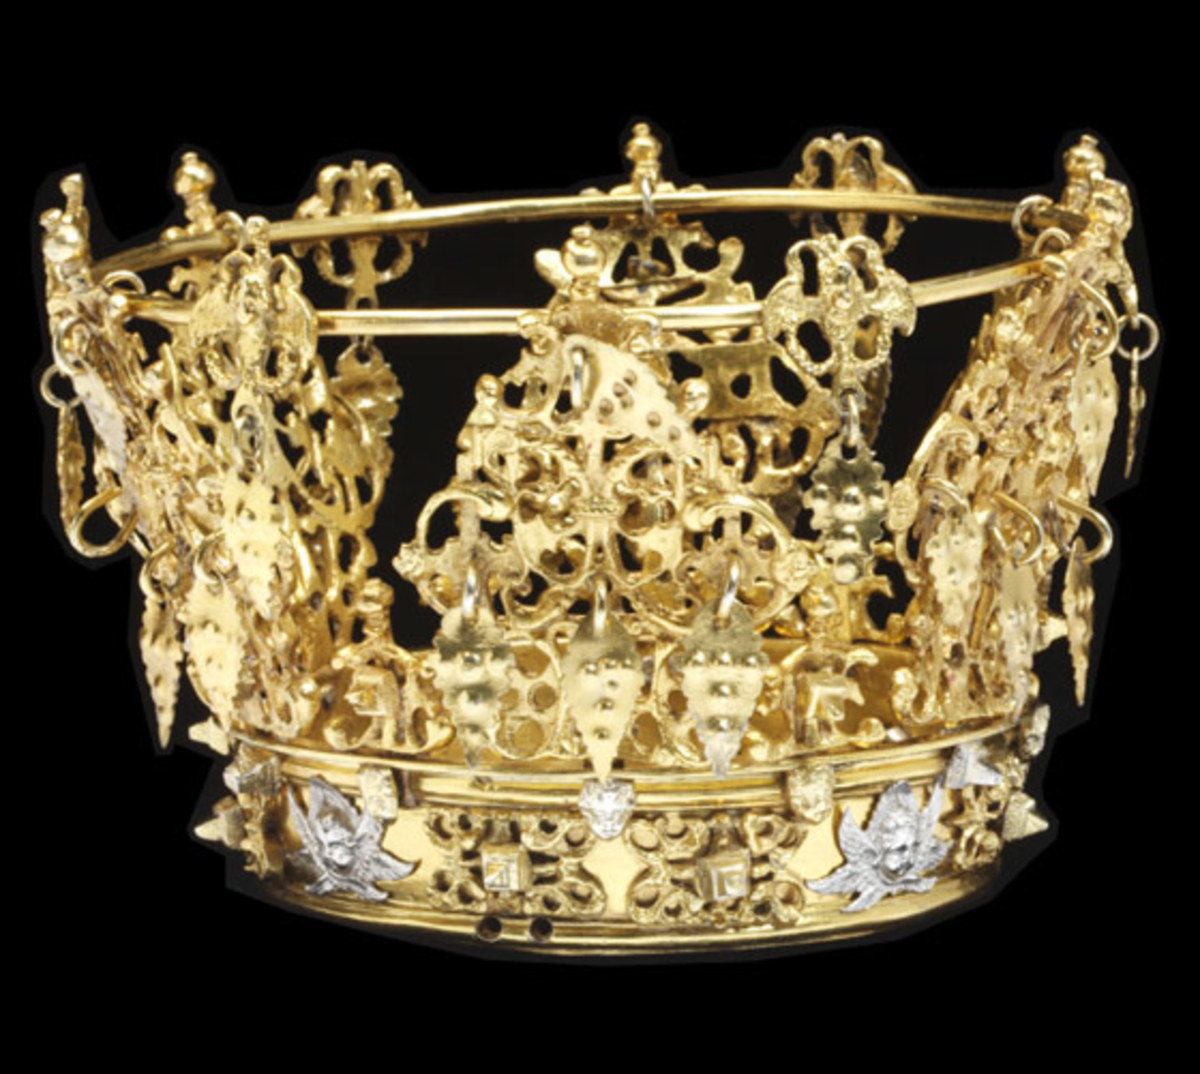 Swedish bridal crown from 18th or 19th Century